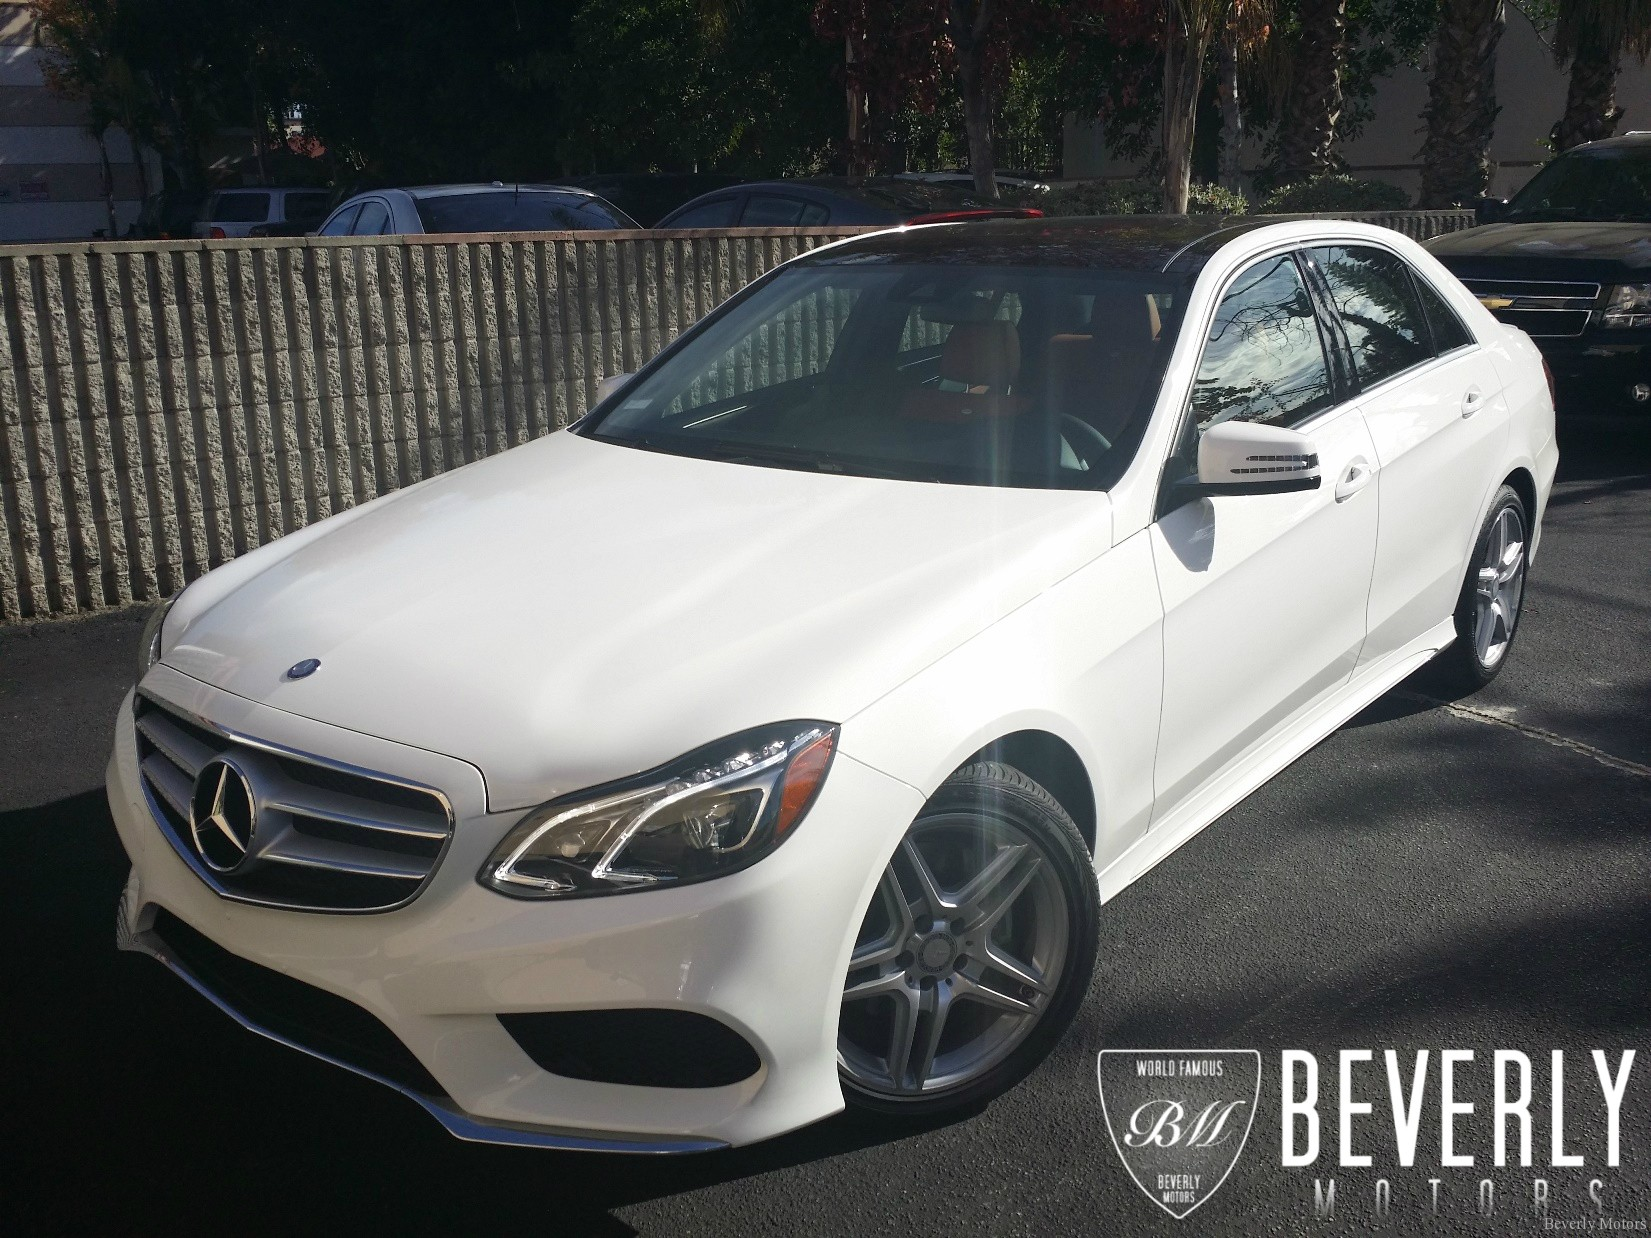 los angeles pasadena beverly hills west hollywood 5 beverly. Cars Review. Best American Auto & Cars Review